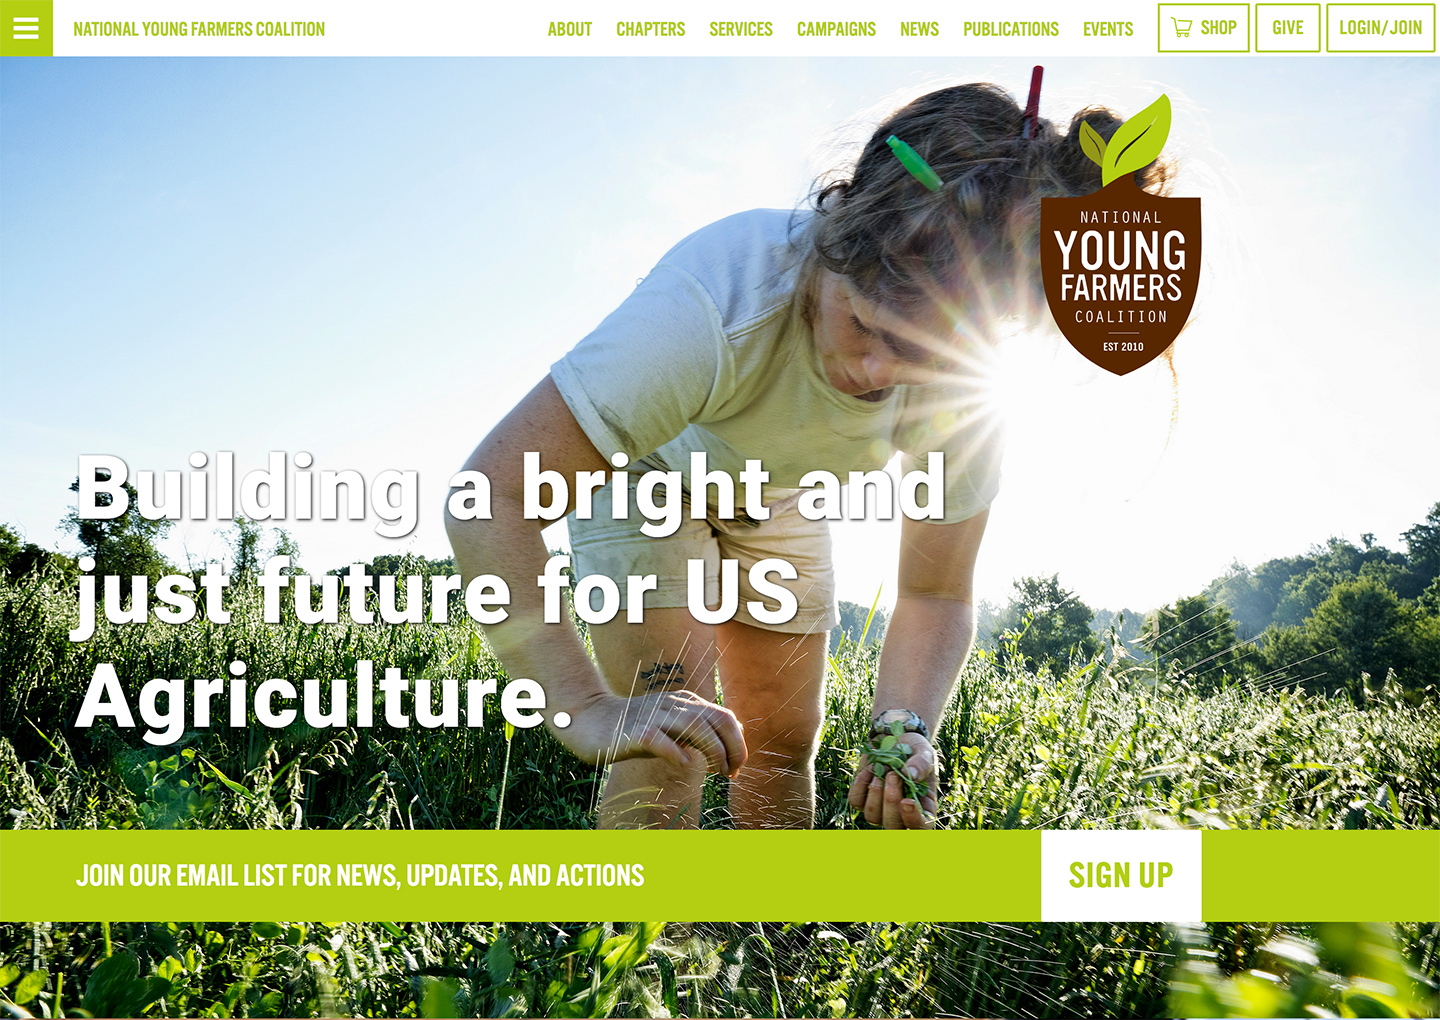 Online Agriculture Advocacy with the National Young Farmers Coalition